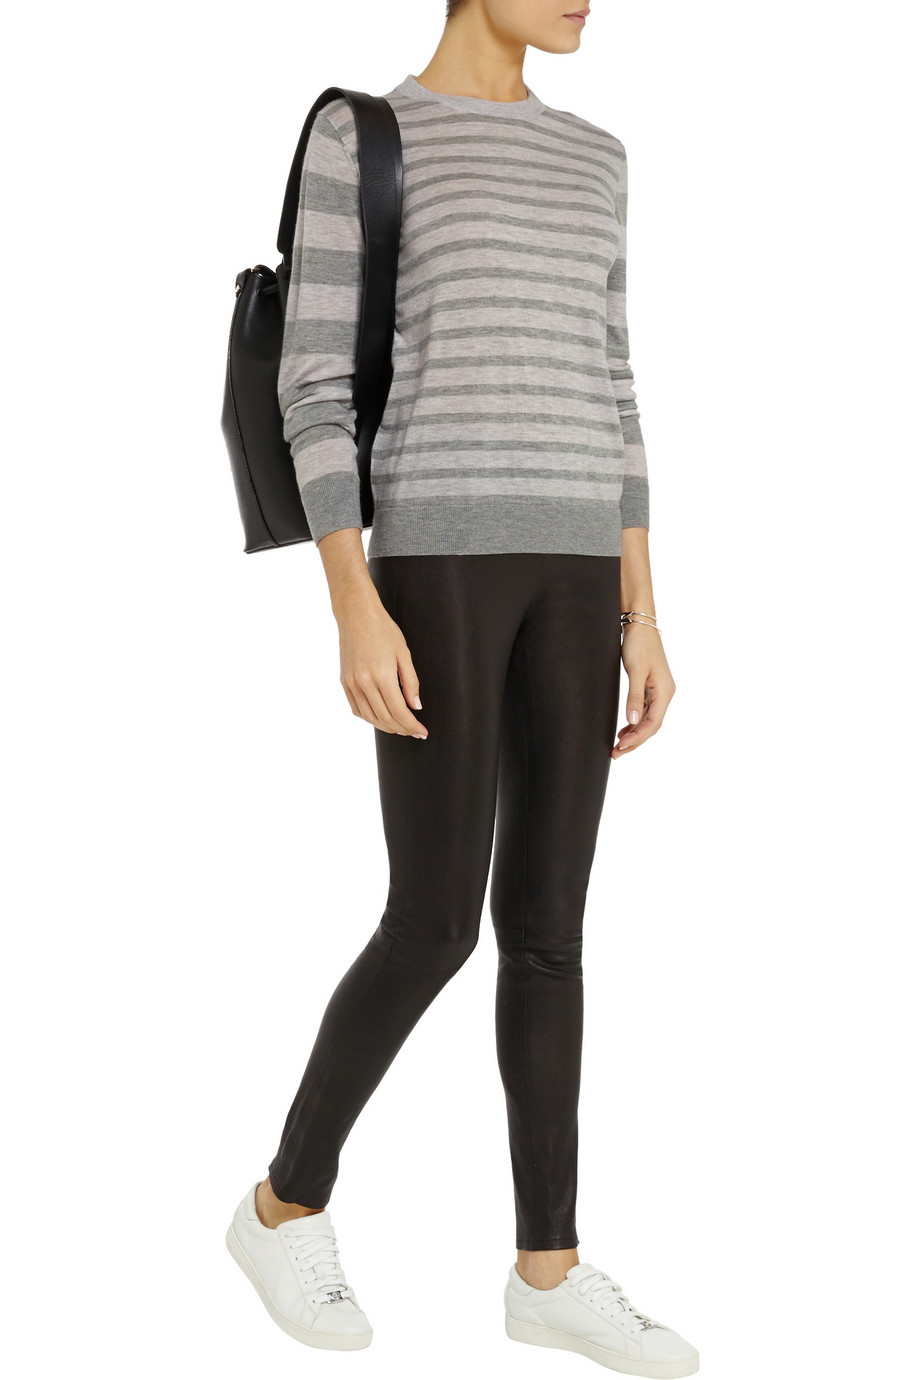 Striped in The Anine Bing Sweater